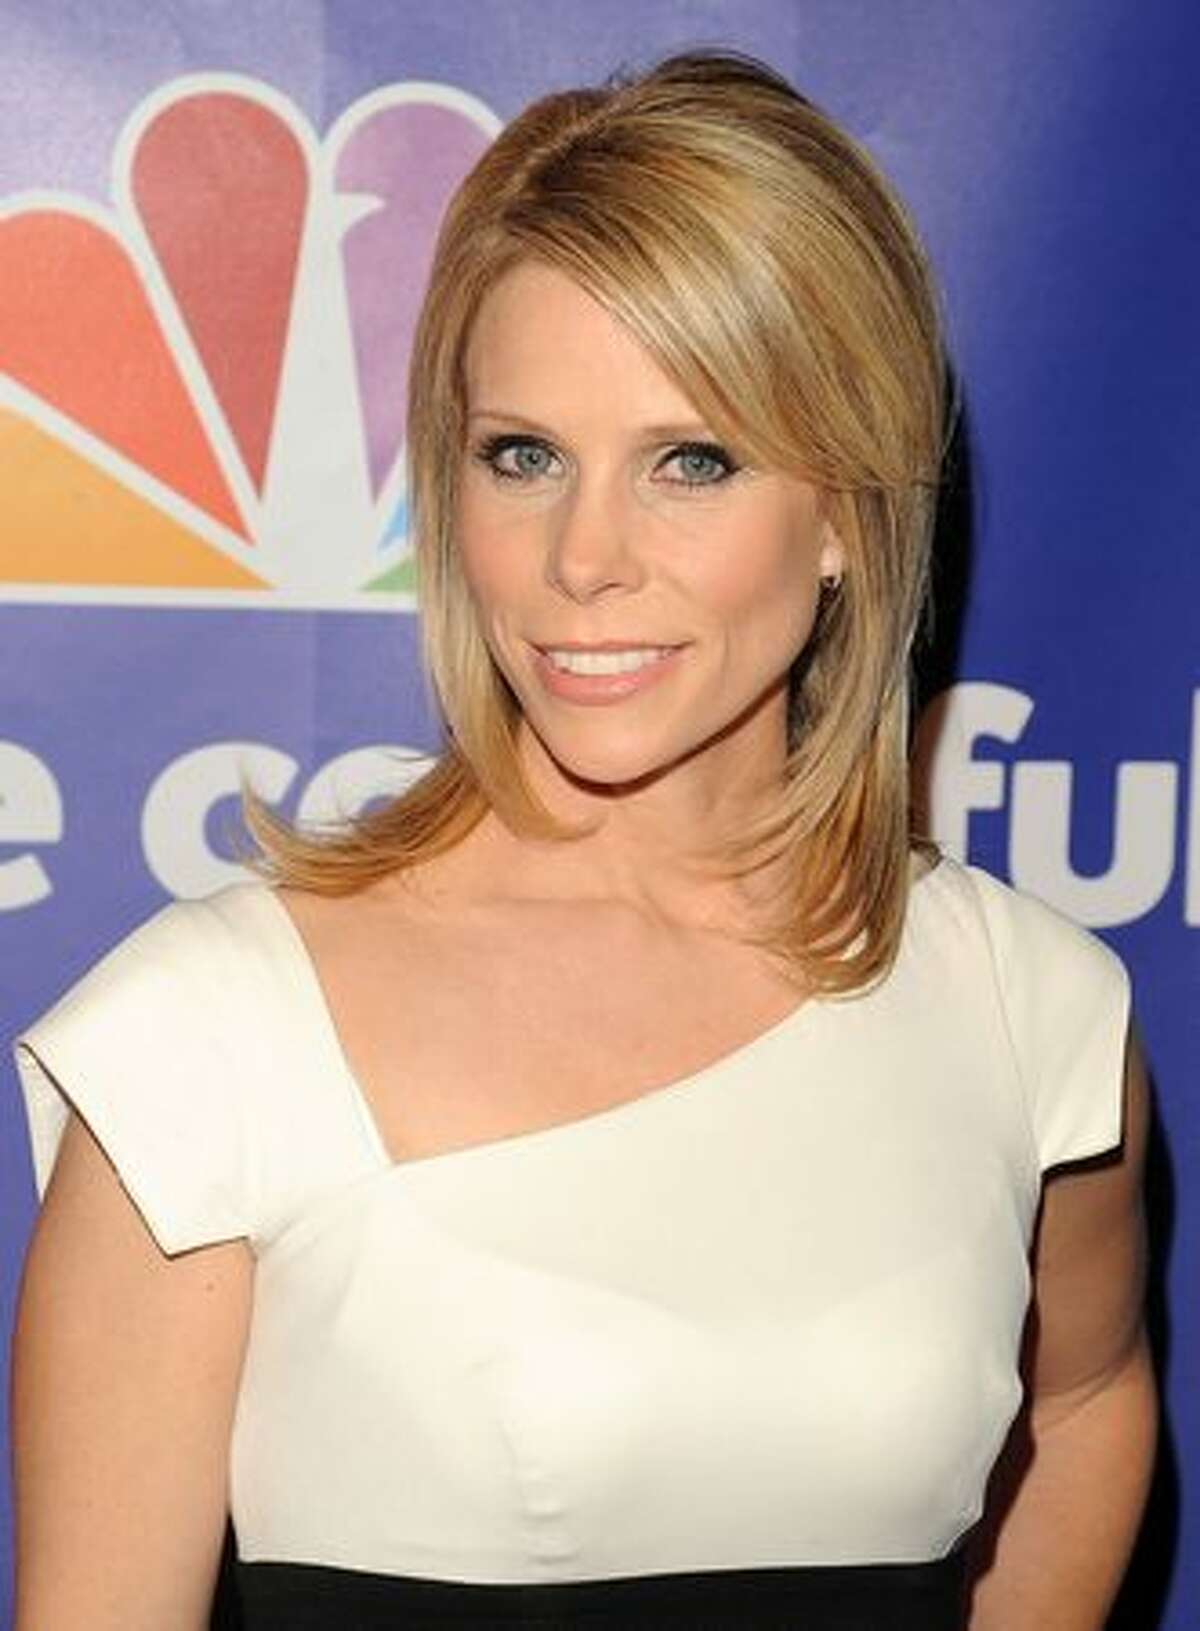 Actress Cheryl Hines attends the 2010 NBC